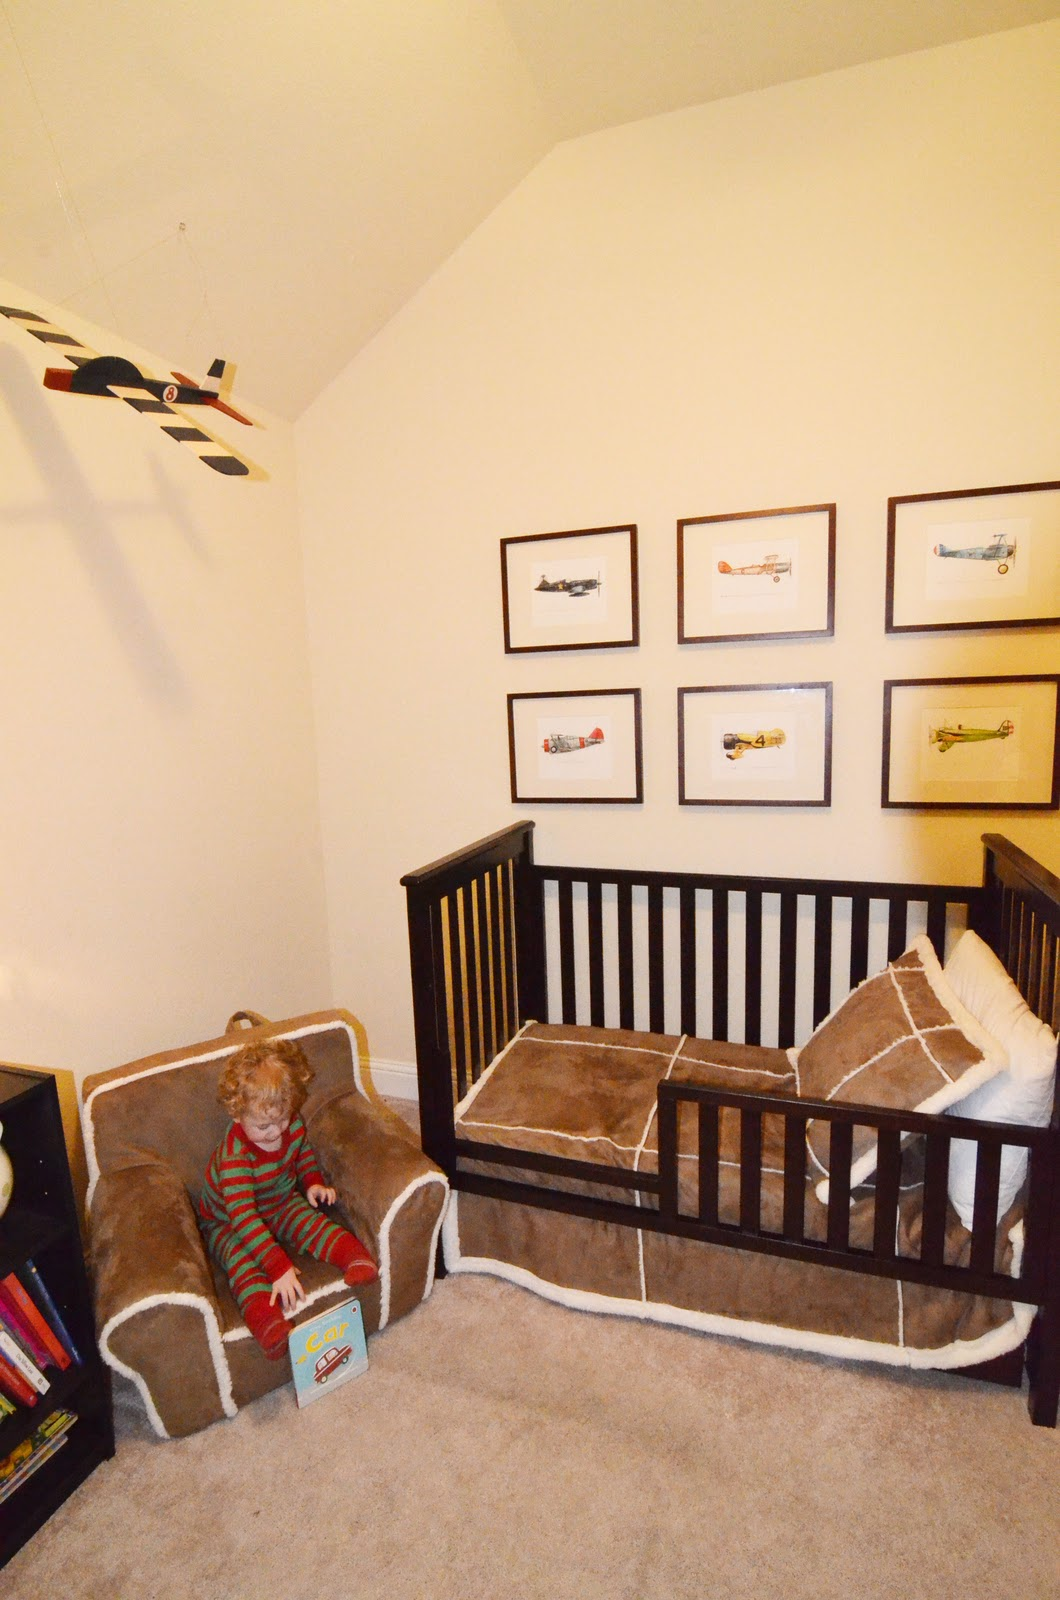 large closet and plane - photo #35